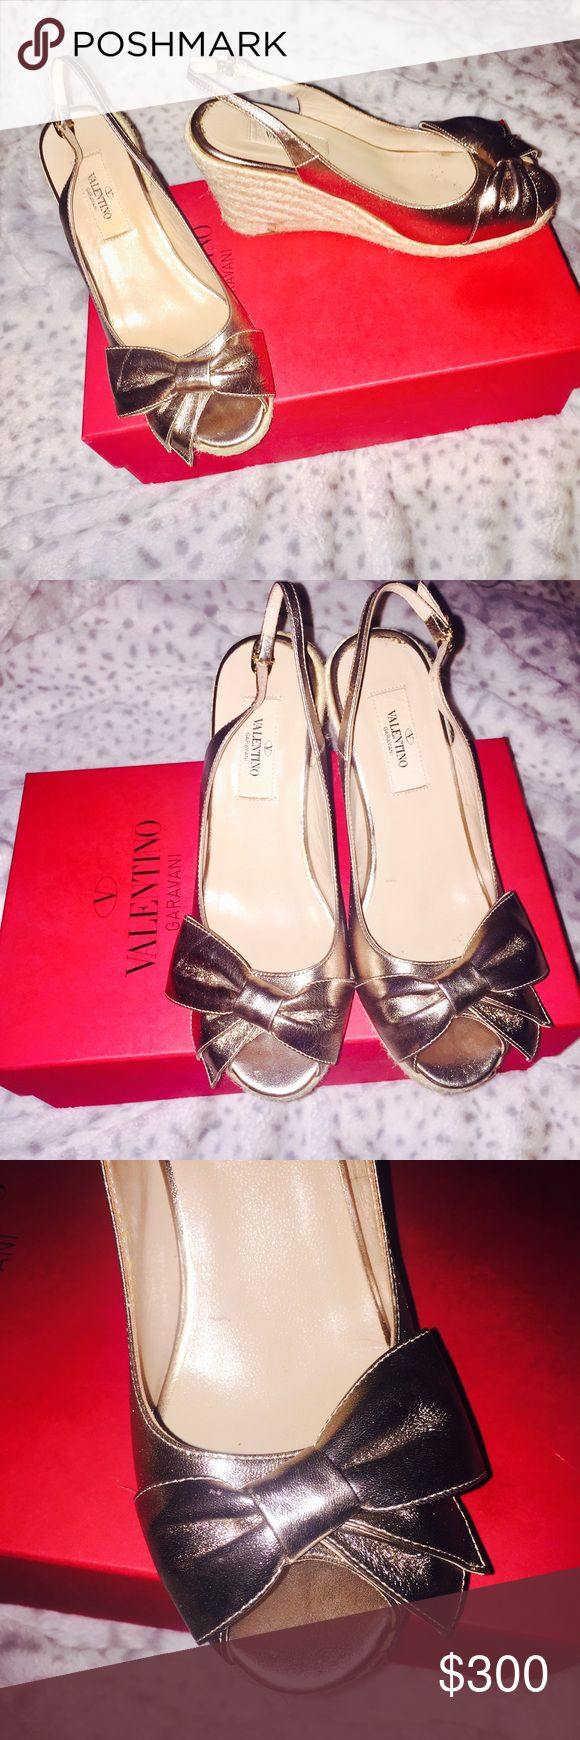 Authentic Valentino wedges I've only worn these twice. Time for a new home. These are Authentic purchased from Saks Fifth Avenue. I have the receipt if you want it. Color is a soft gold. No lowball offers please. I'd rather keep them. Valentino Shoes Wedges